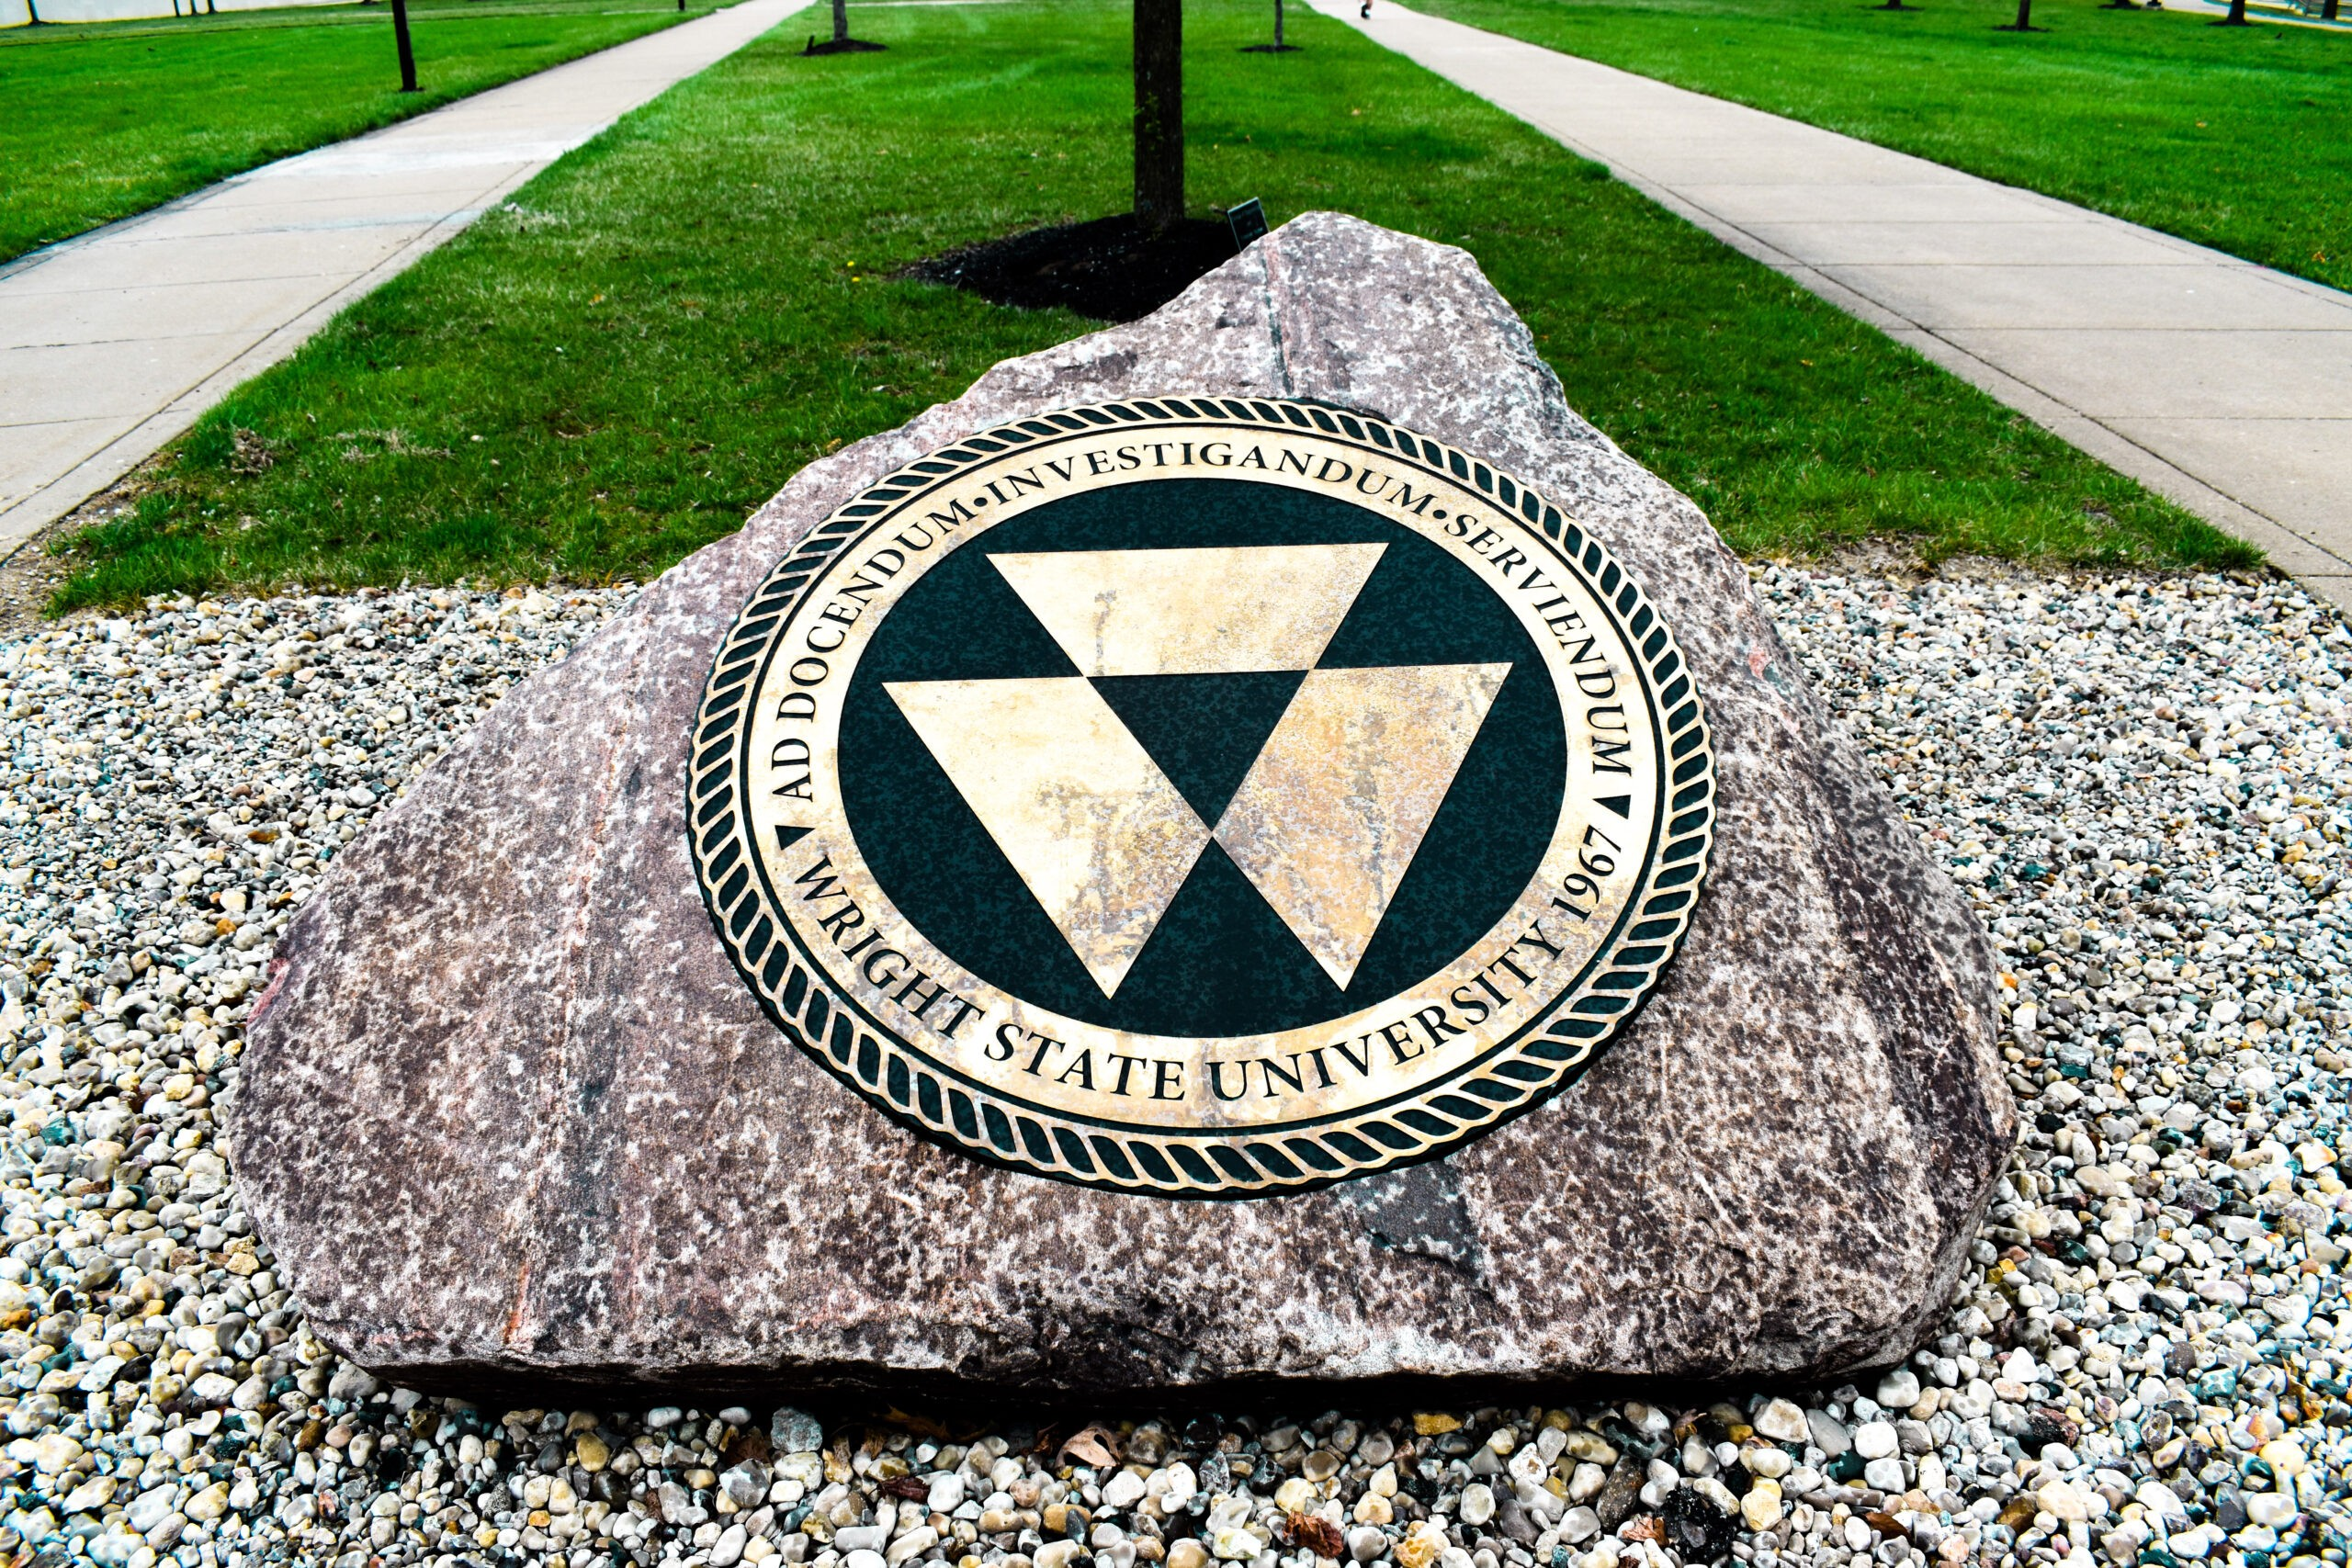 Seal monument located on Wright State's campus